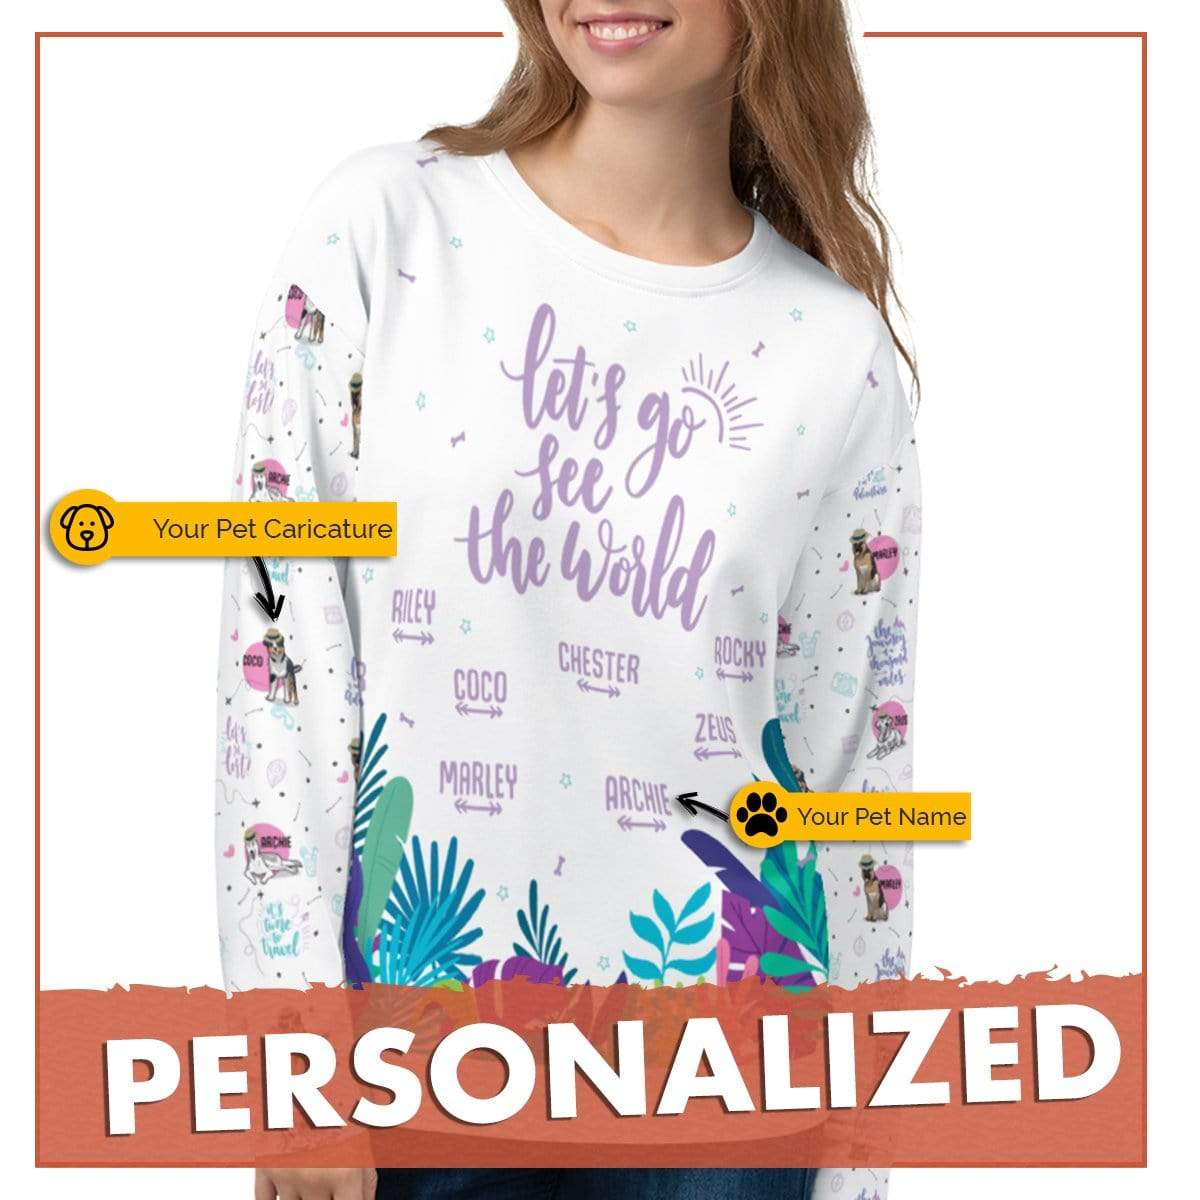 Personalized Dog Mom Gifts By Pupnpaws All Over Printed Sweatshirt Lets Go See The World Sweatshirt For DogMom